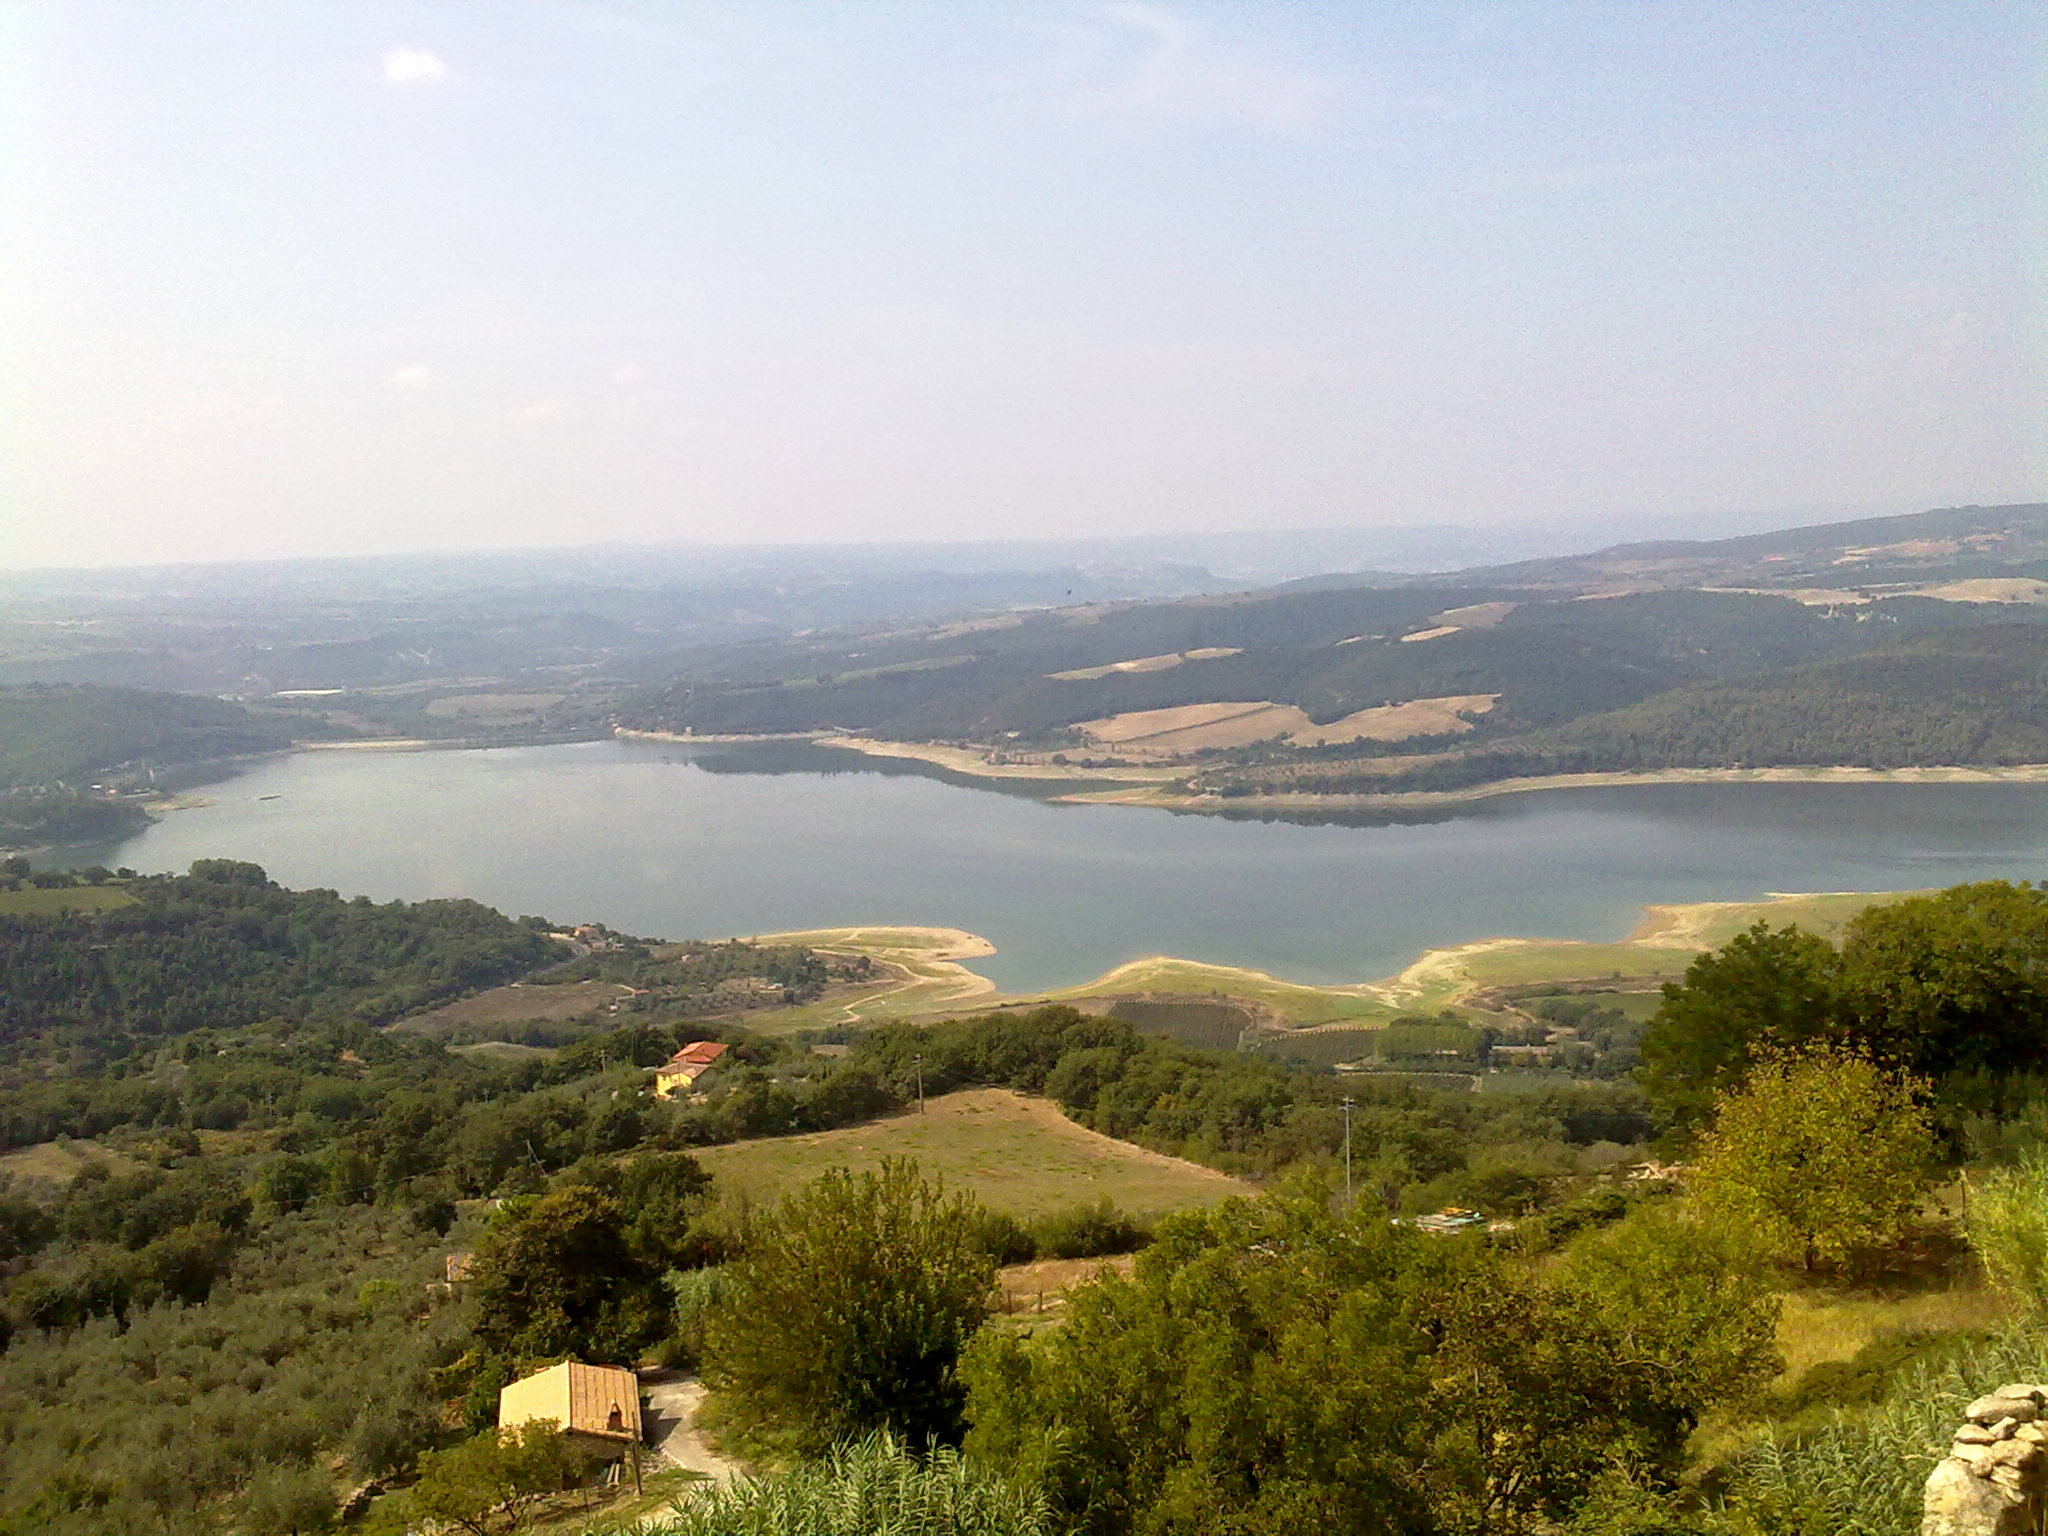 Un weekend al confine tra Tuscia e Umbria